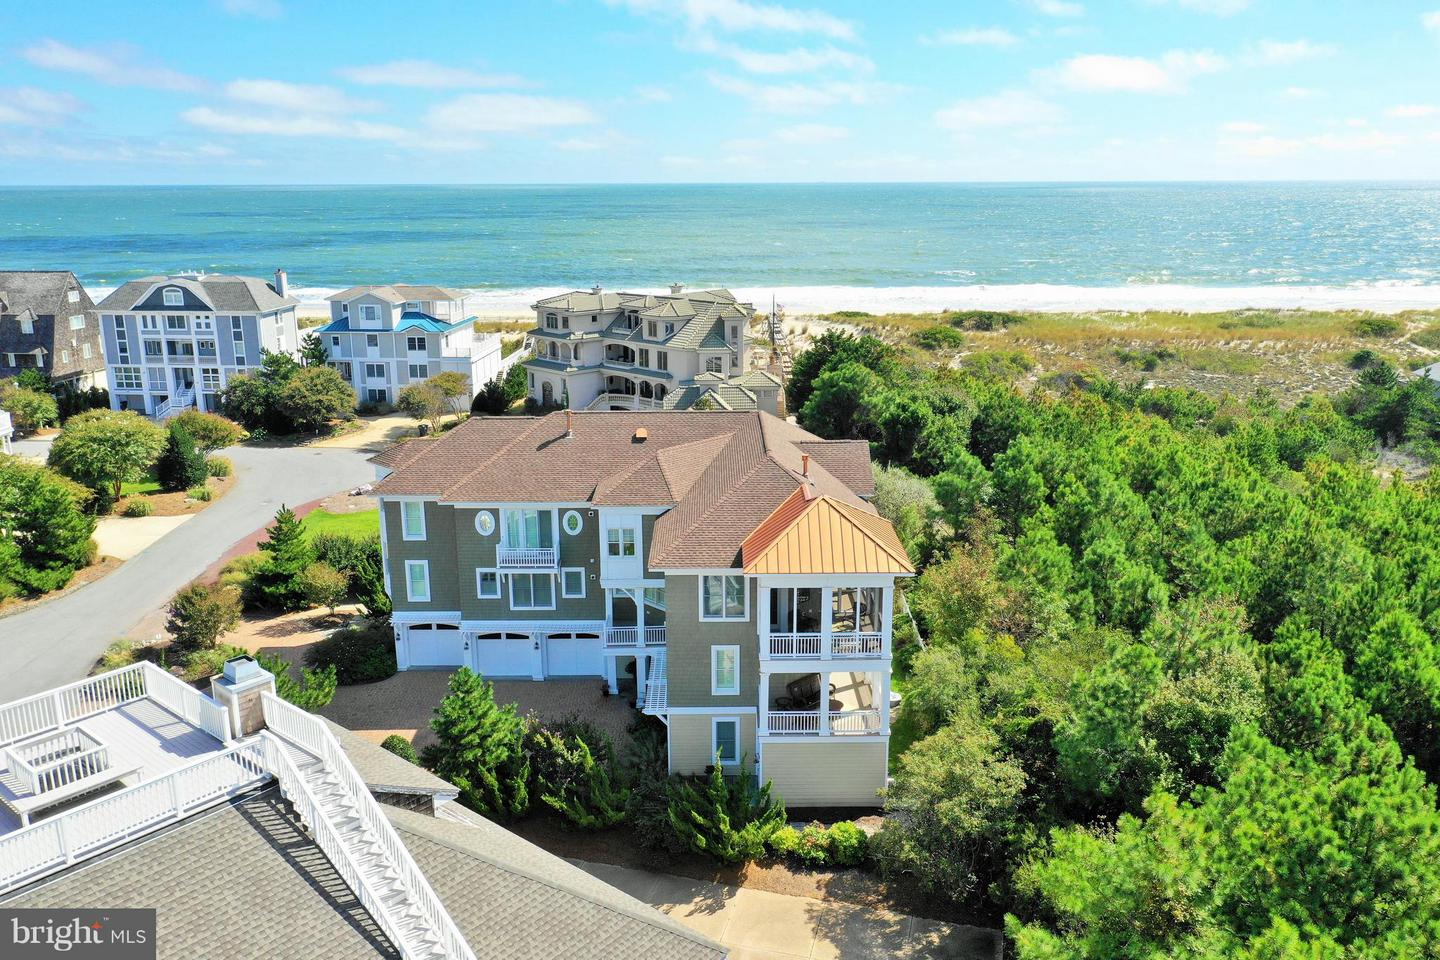 1002293530-300720129963-2018-09-25-15-08-25 31 Hall Ave | Rehoboth Beach, DE Real Estate For Sale | MLS# 1002293530  - 1st Choice Properties